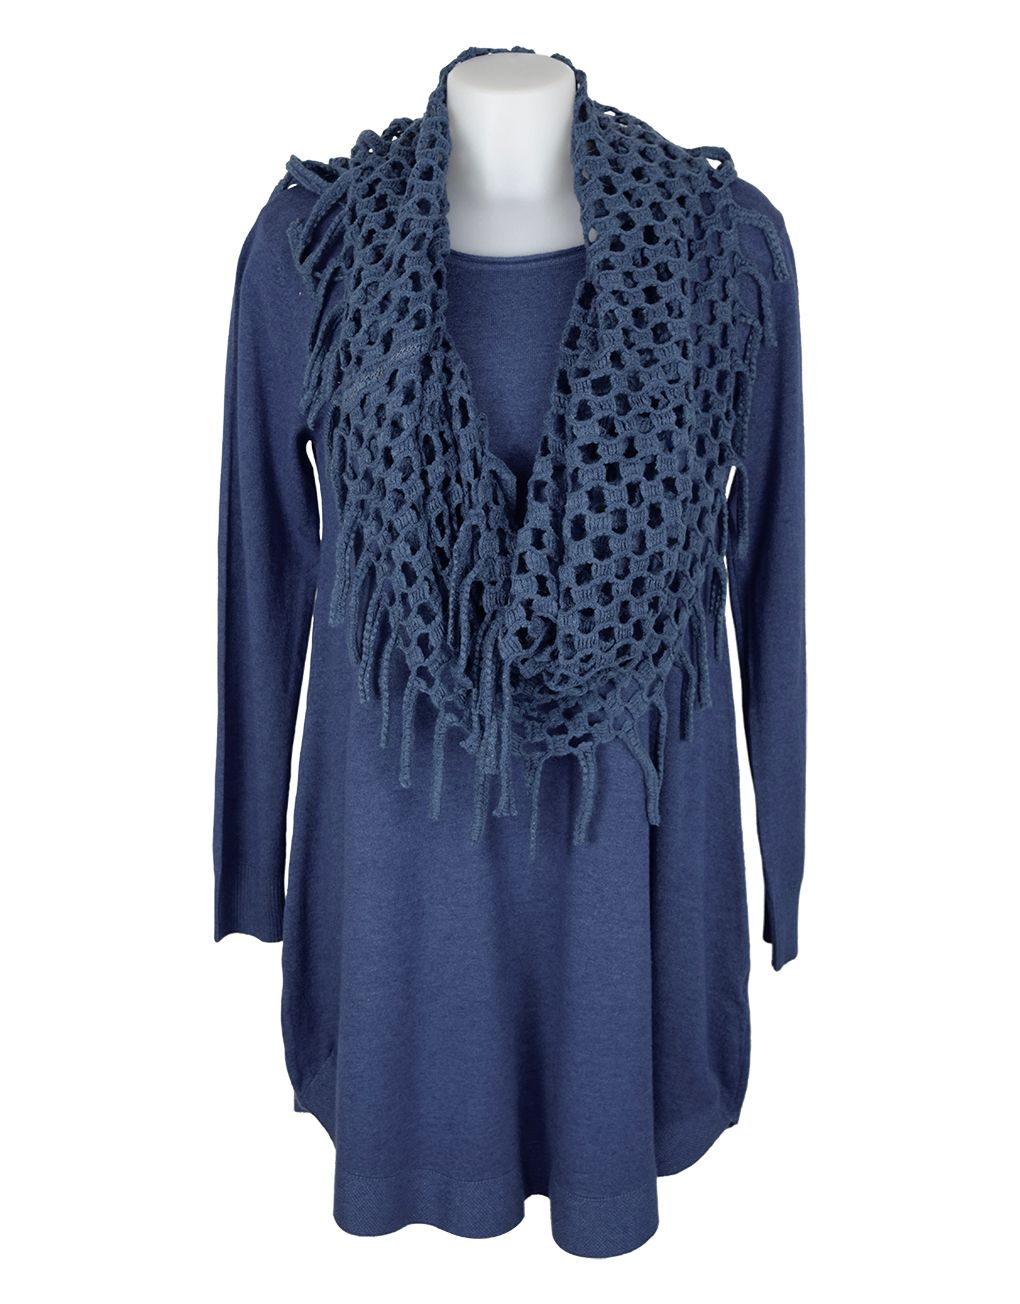 Fashion Fix Italian Blue Knitted Tunic With Snood/Scarf